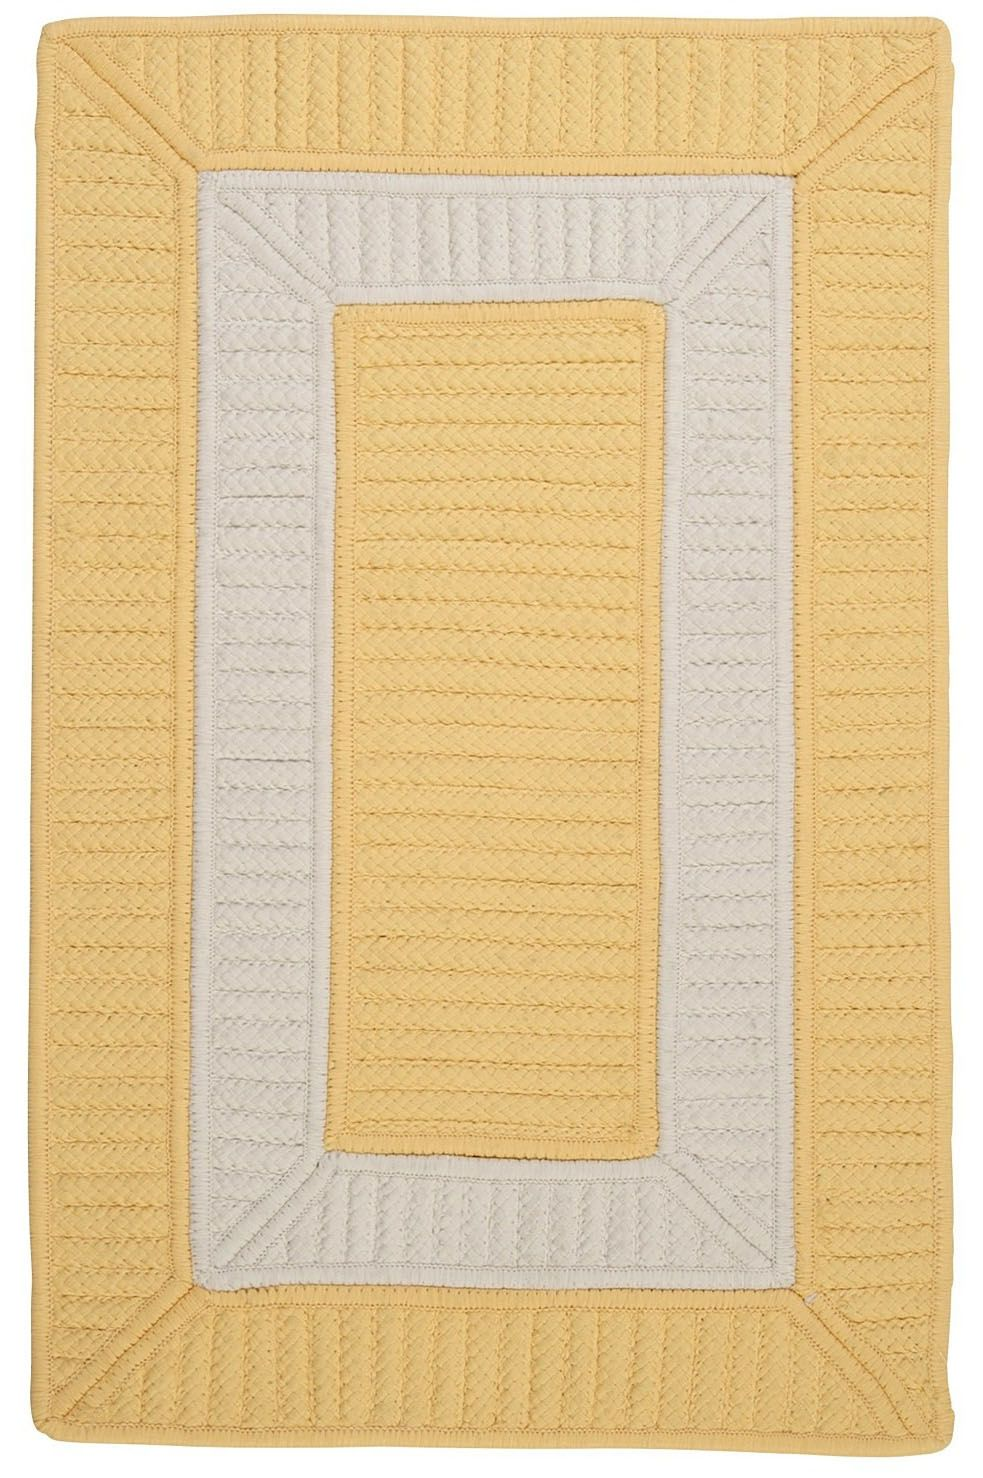 colonial mills rope walk braided area rug collection